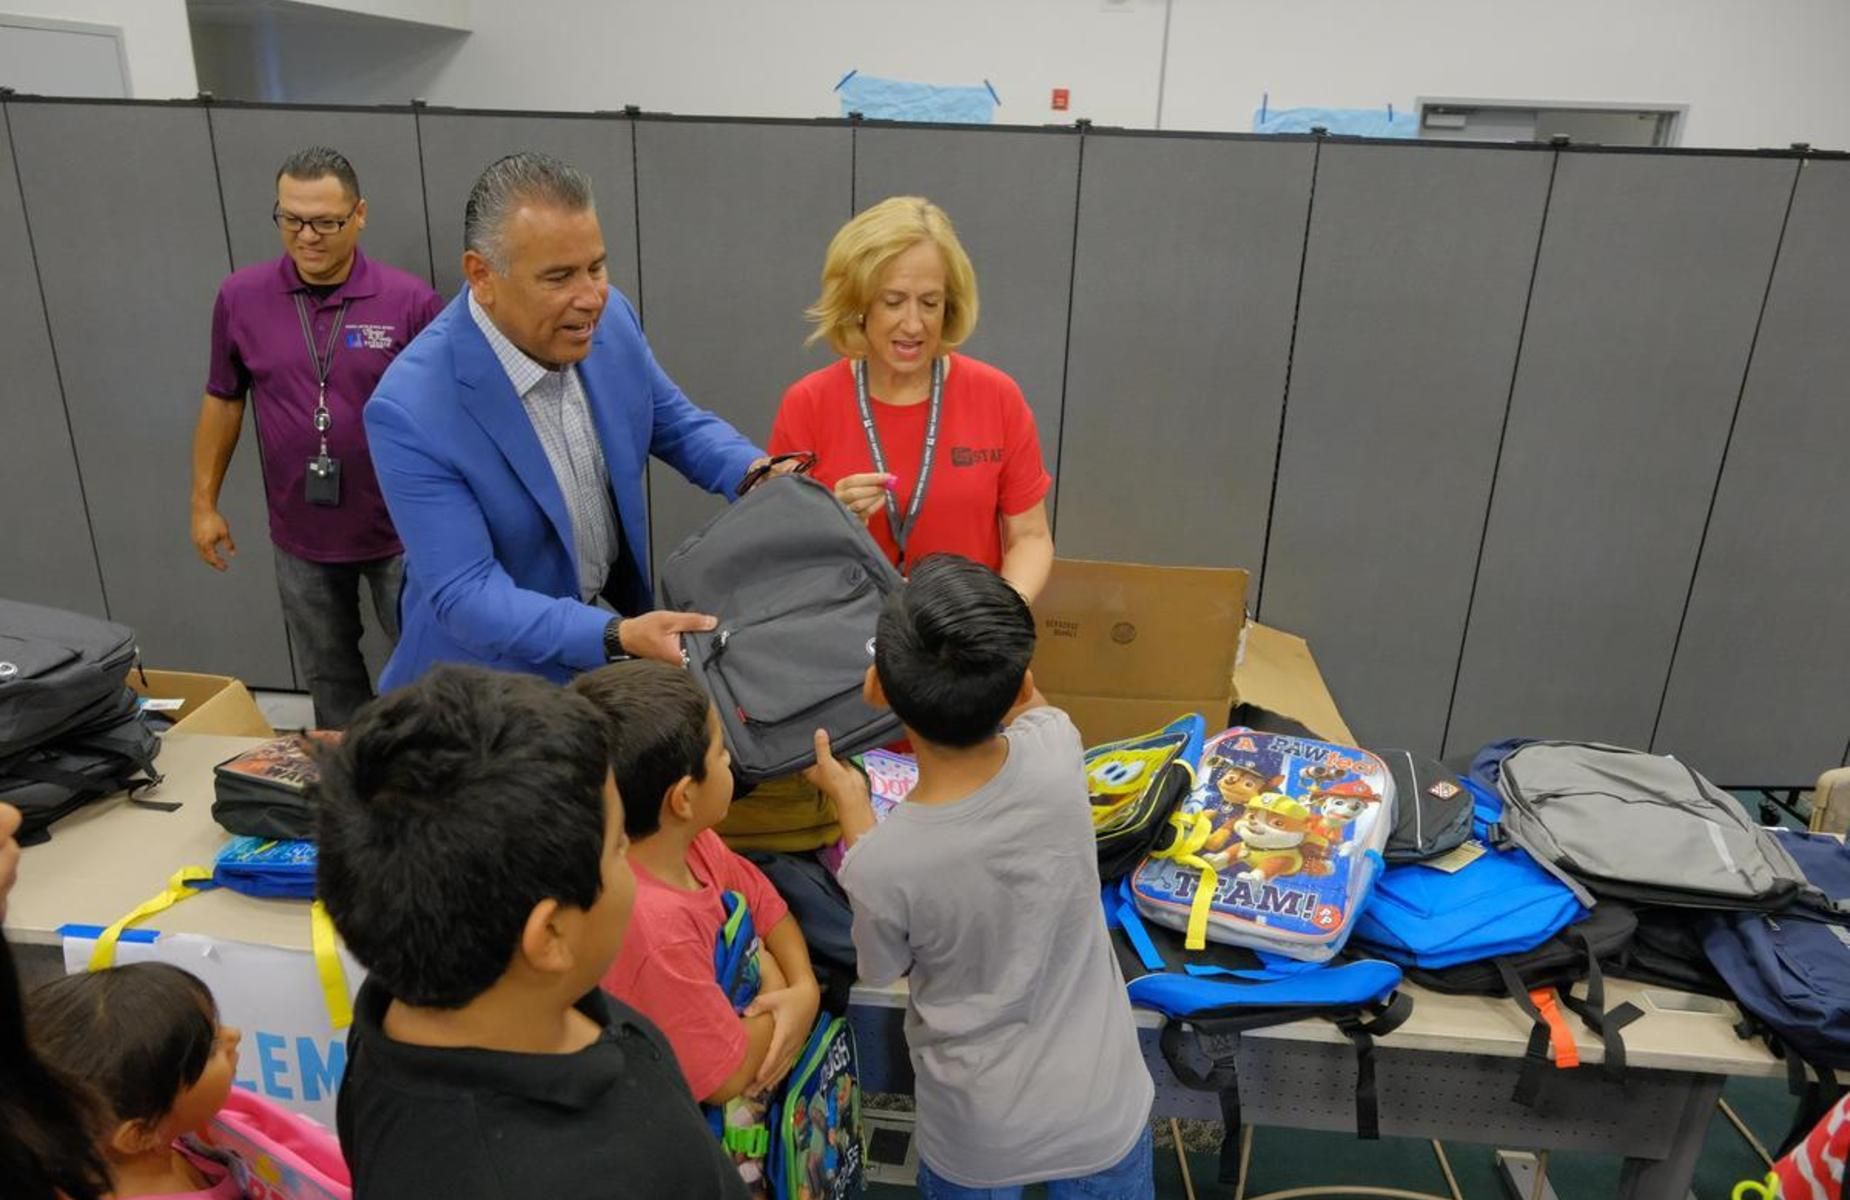 The #PUSD Family Resource Center Provided free School supplies and backpacks to children on Aug. 2nd. Thank You to all that helped make this annual event a wonderful success! #allmeansall #proud2bepusd #pusdfsrc